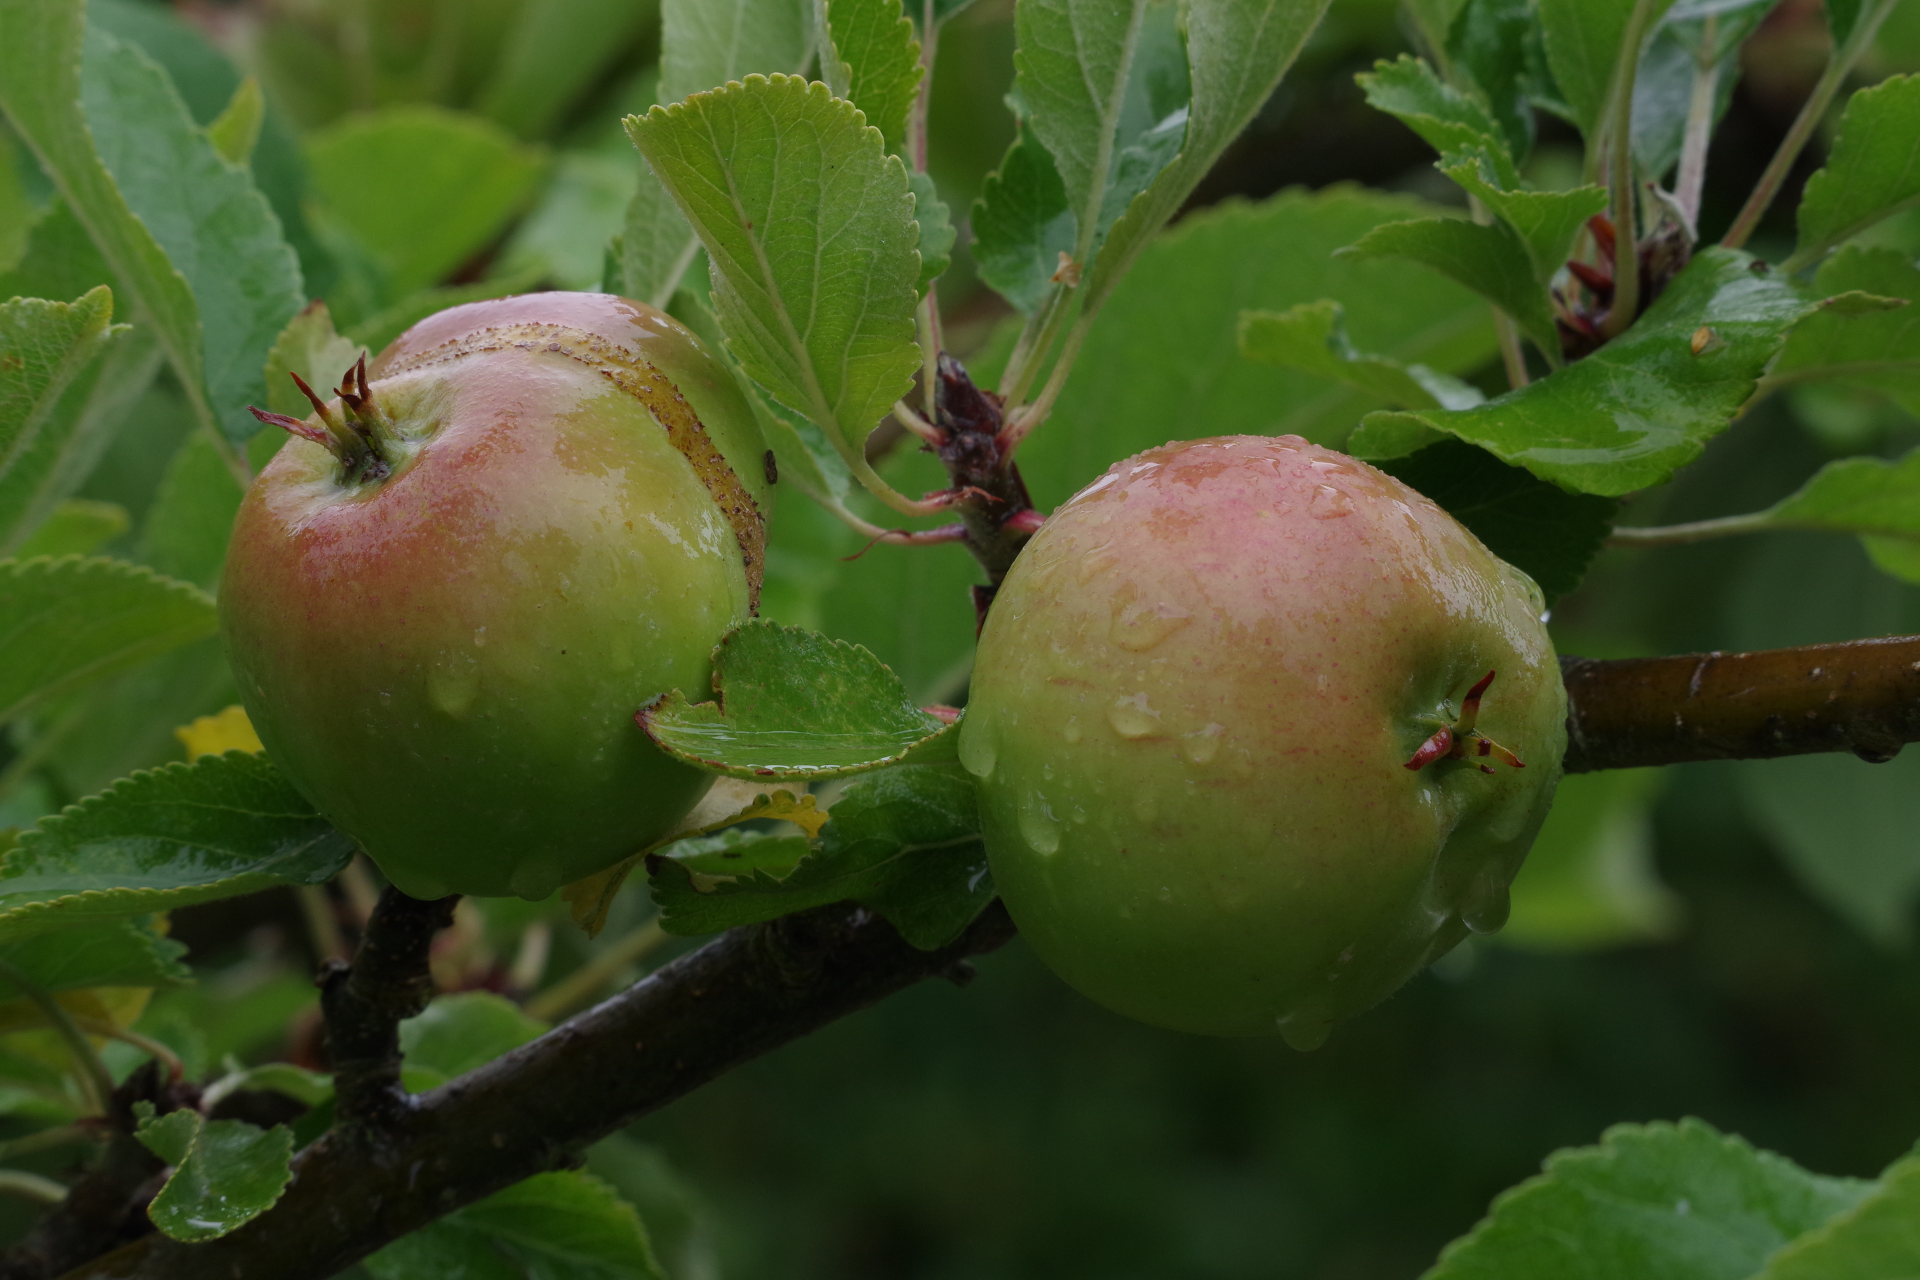 Rain on Apples on Tree